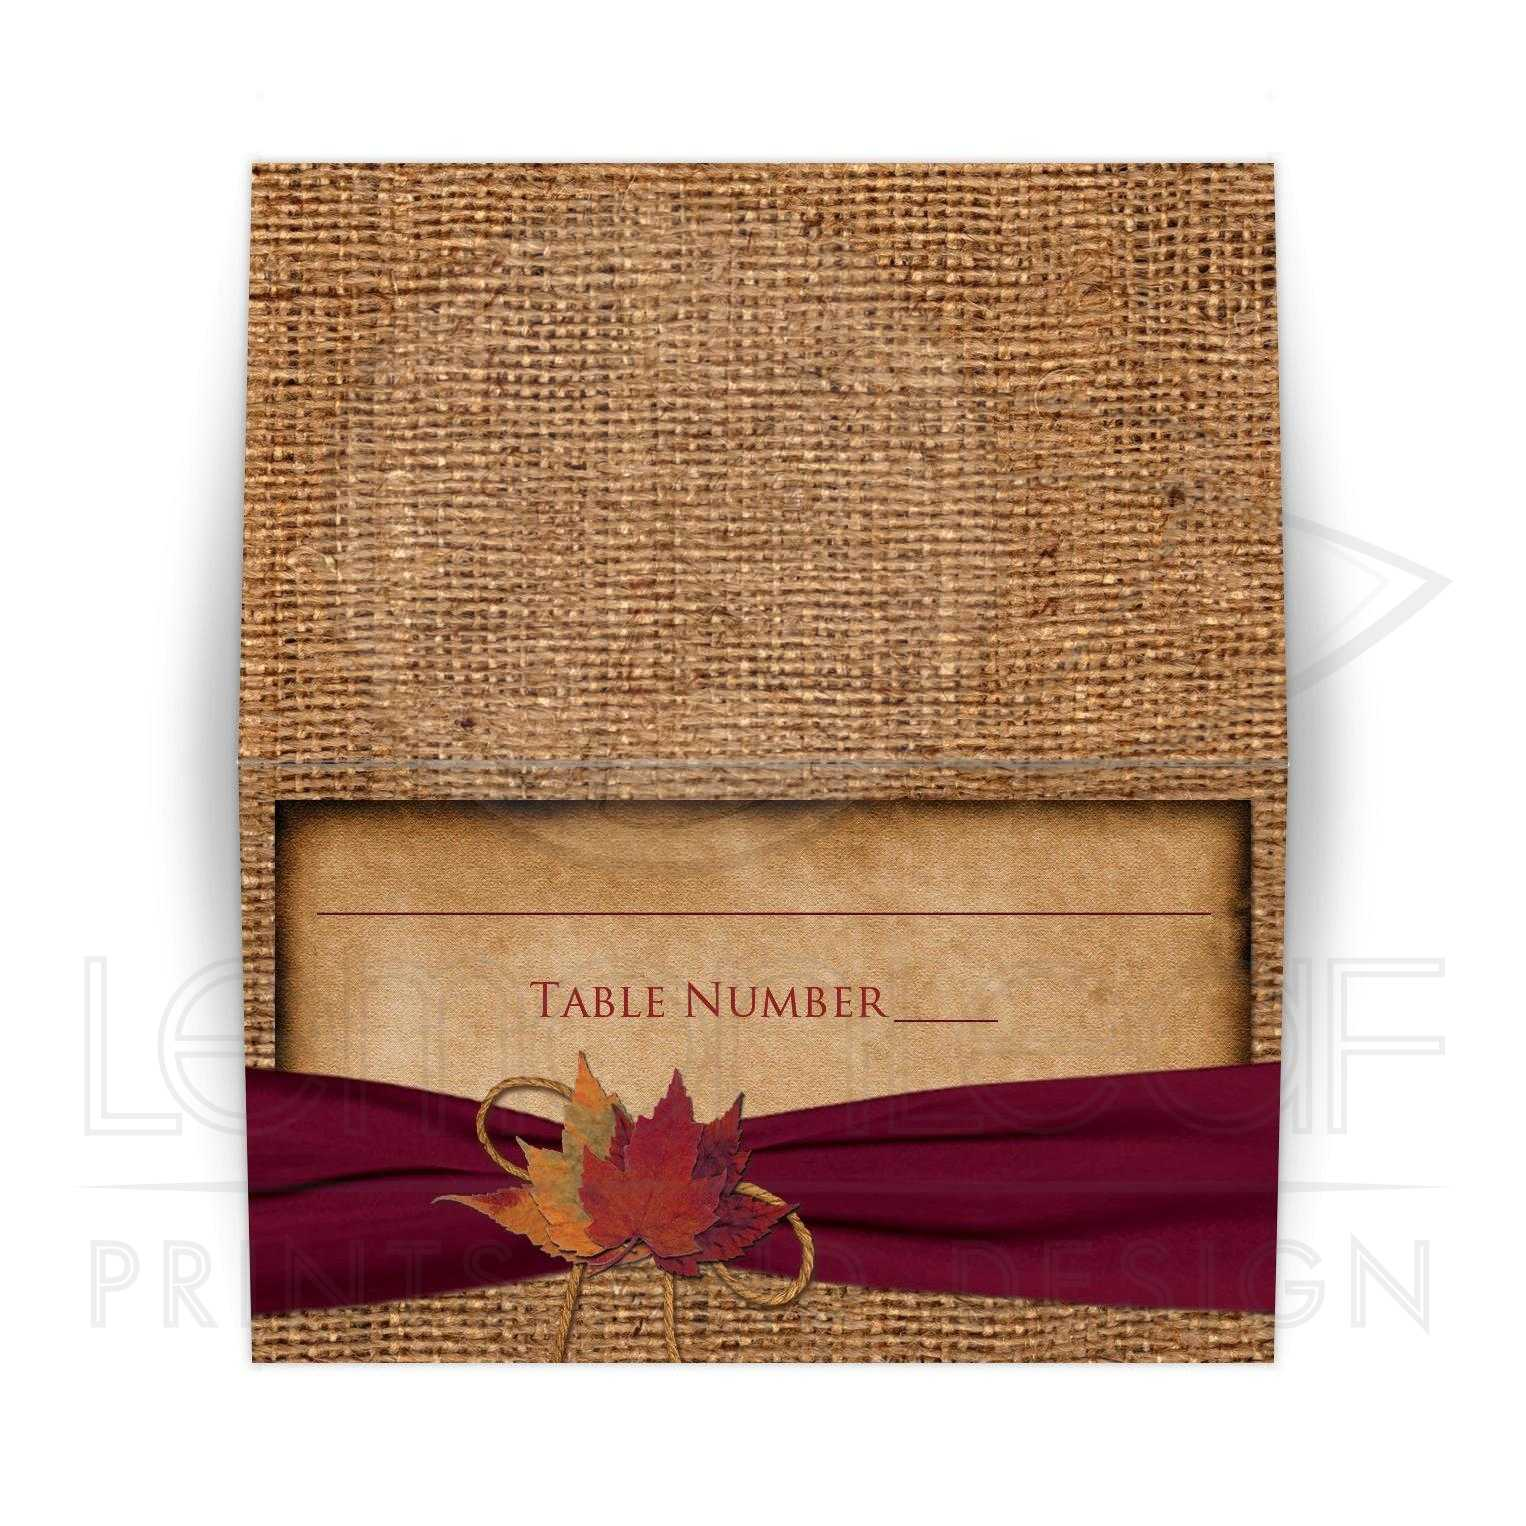 06c4c37461b Rustic Folded Wedding Place Card or Escort Card | Autumn Leaves, Faux  Burlap | PRINTED Burgundy Wine Ribbon